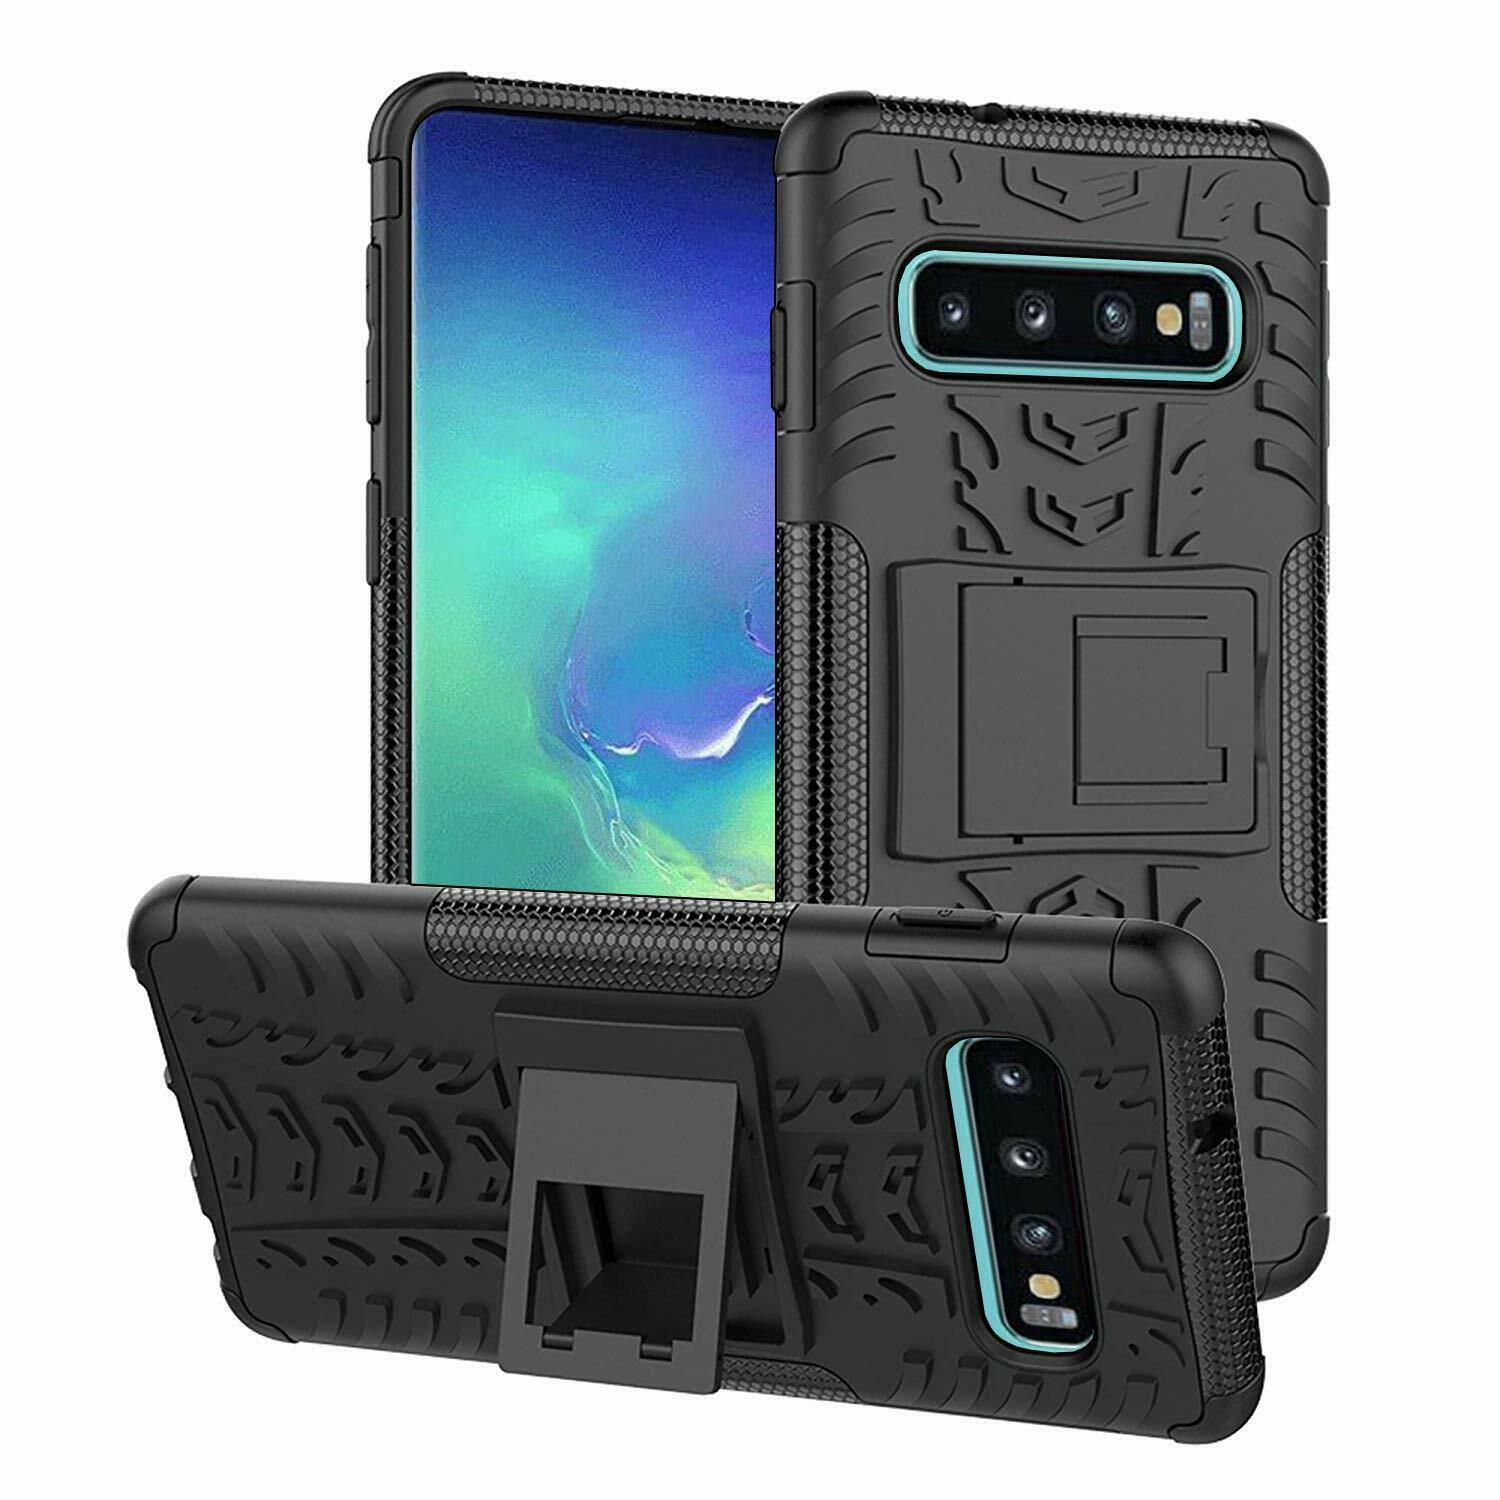 Shockproof Heavy Duty Rugged Arrmored Case Cover Samsung Galaxy Note 10 Plus/Note 10 Plus 5G